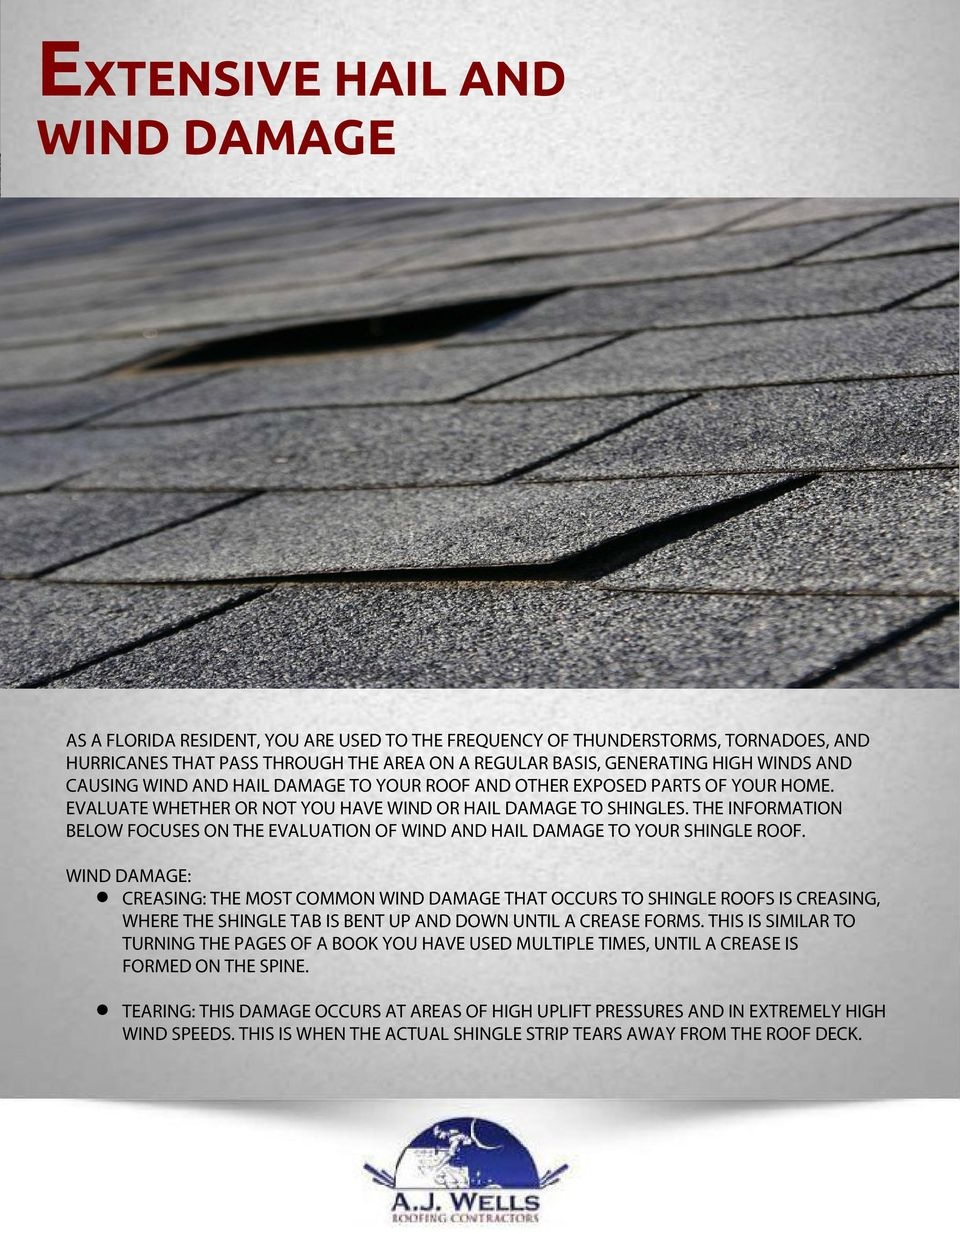 THE INFORMATION BELOW FOCUSES ON THE EVALUATION OF WIND AND HAIL DAMAGE TO YOUR SHINGLE ROOF.